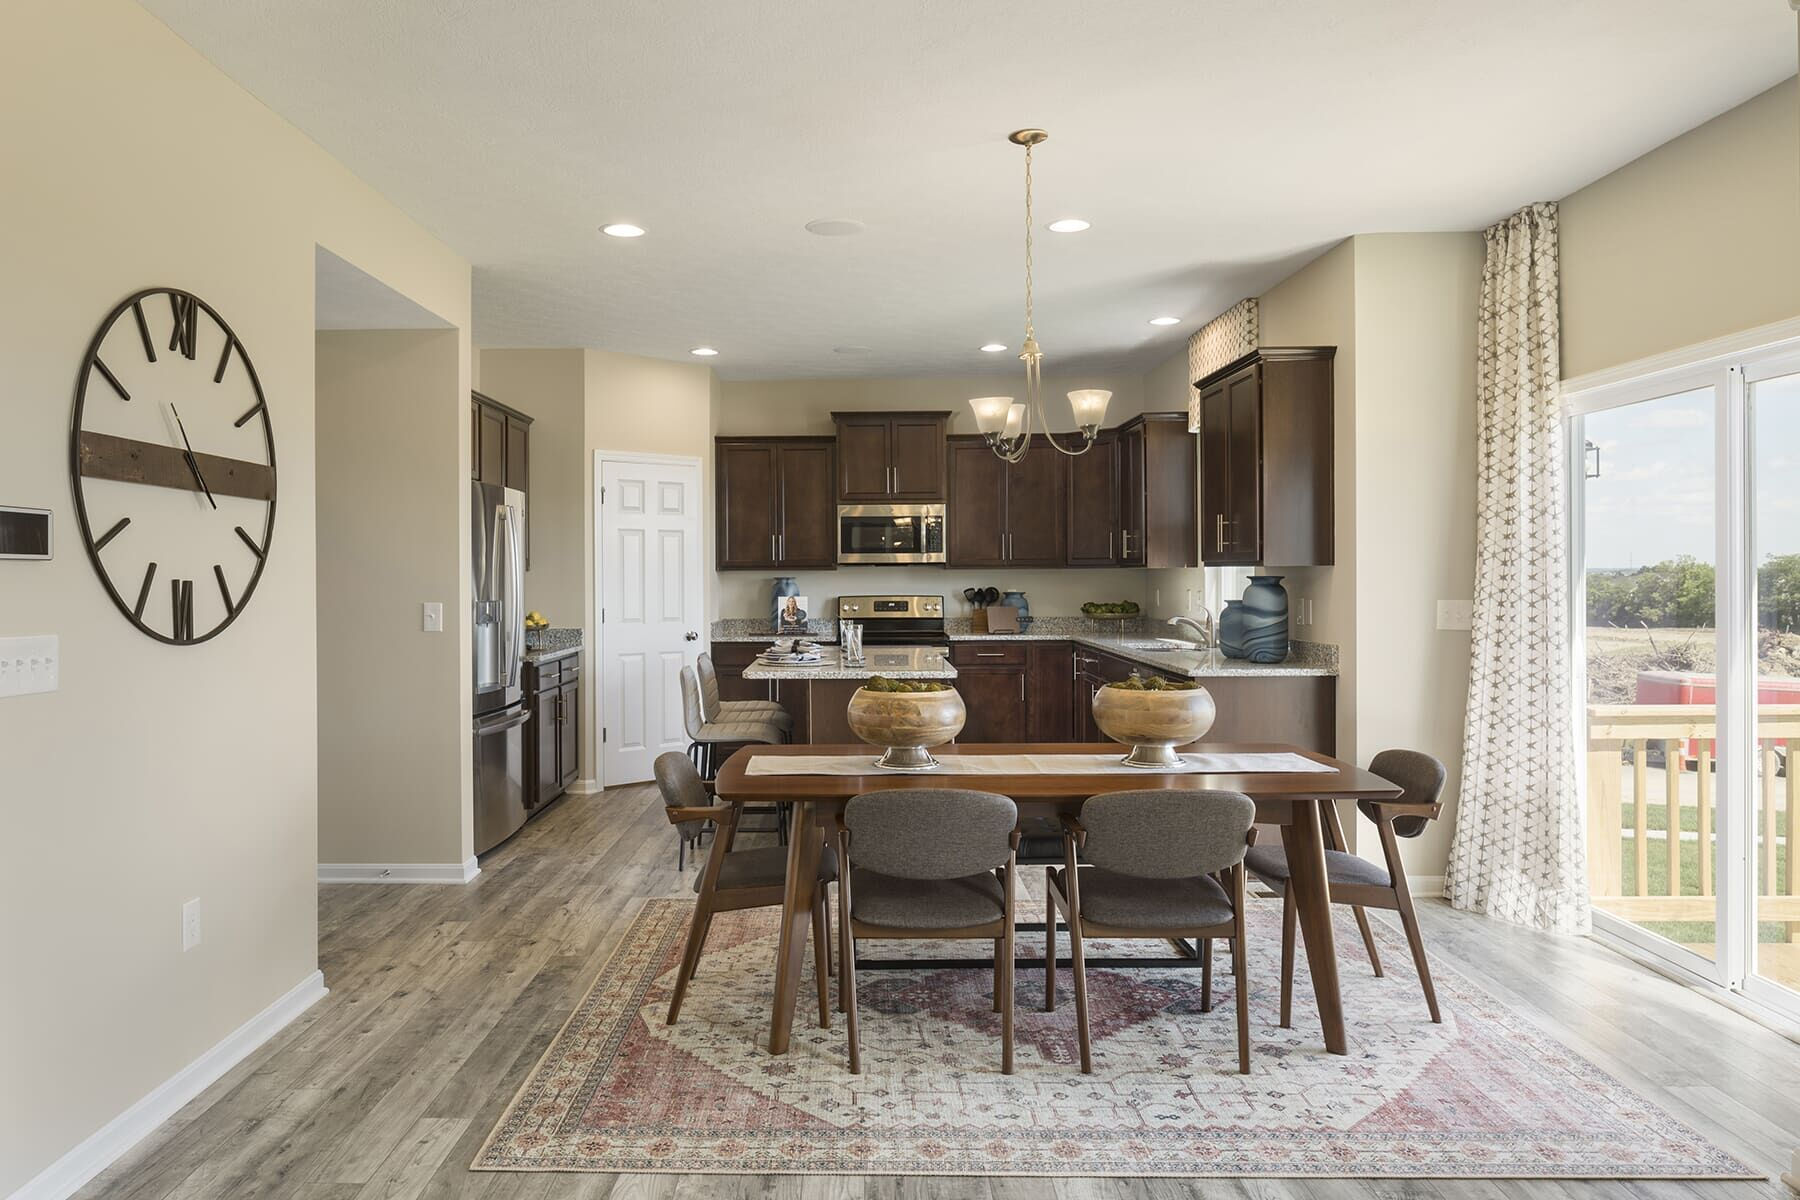 Kitchen featured in the Salinger By M/I Homes in Cincinnati, OH